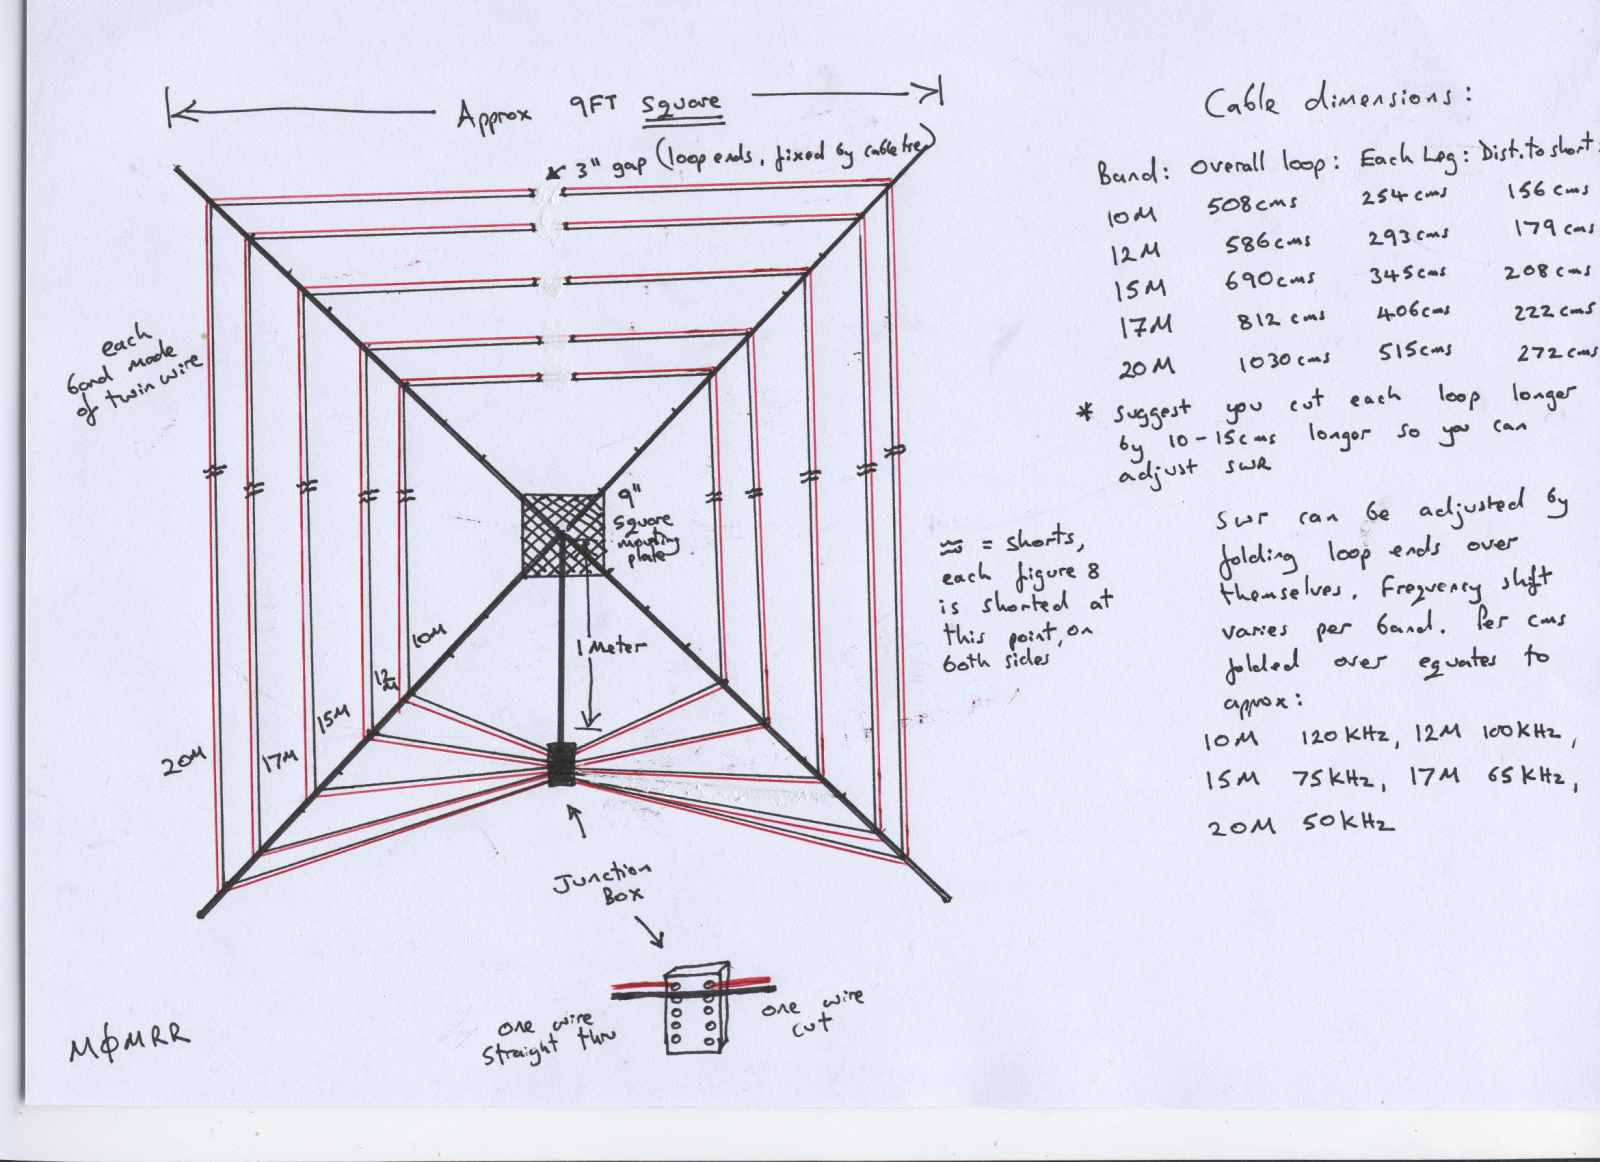 Antenna Plans That Dont Make Any Sense Page 4 Qrz Forums Gap An Wiring Diagram Http 2bpblogspotcom Zsfuwiwjvpo Scurg4d3 Pi Aaaaaaaabdo Hhxwq26z A0 S1600